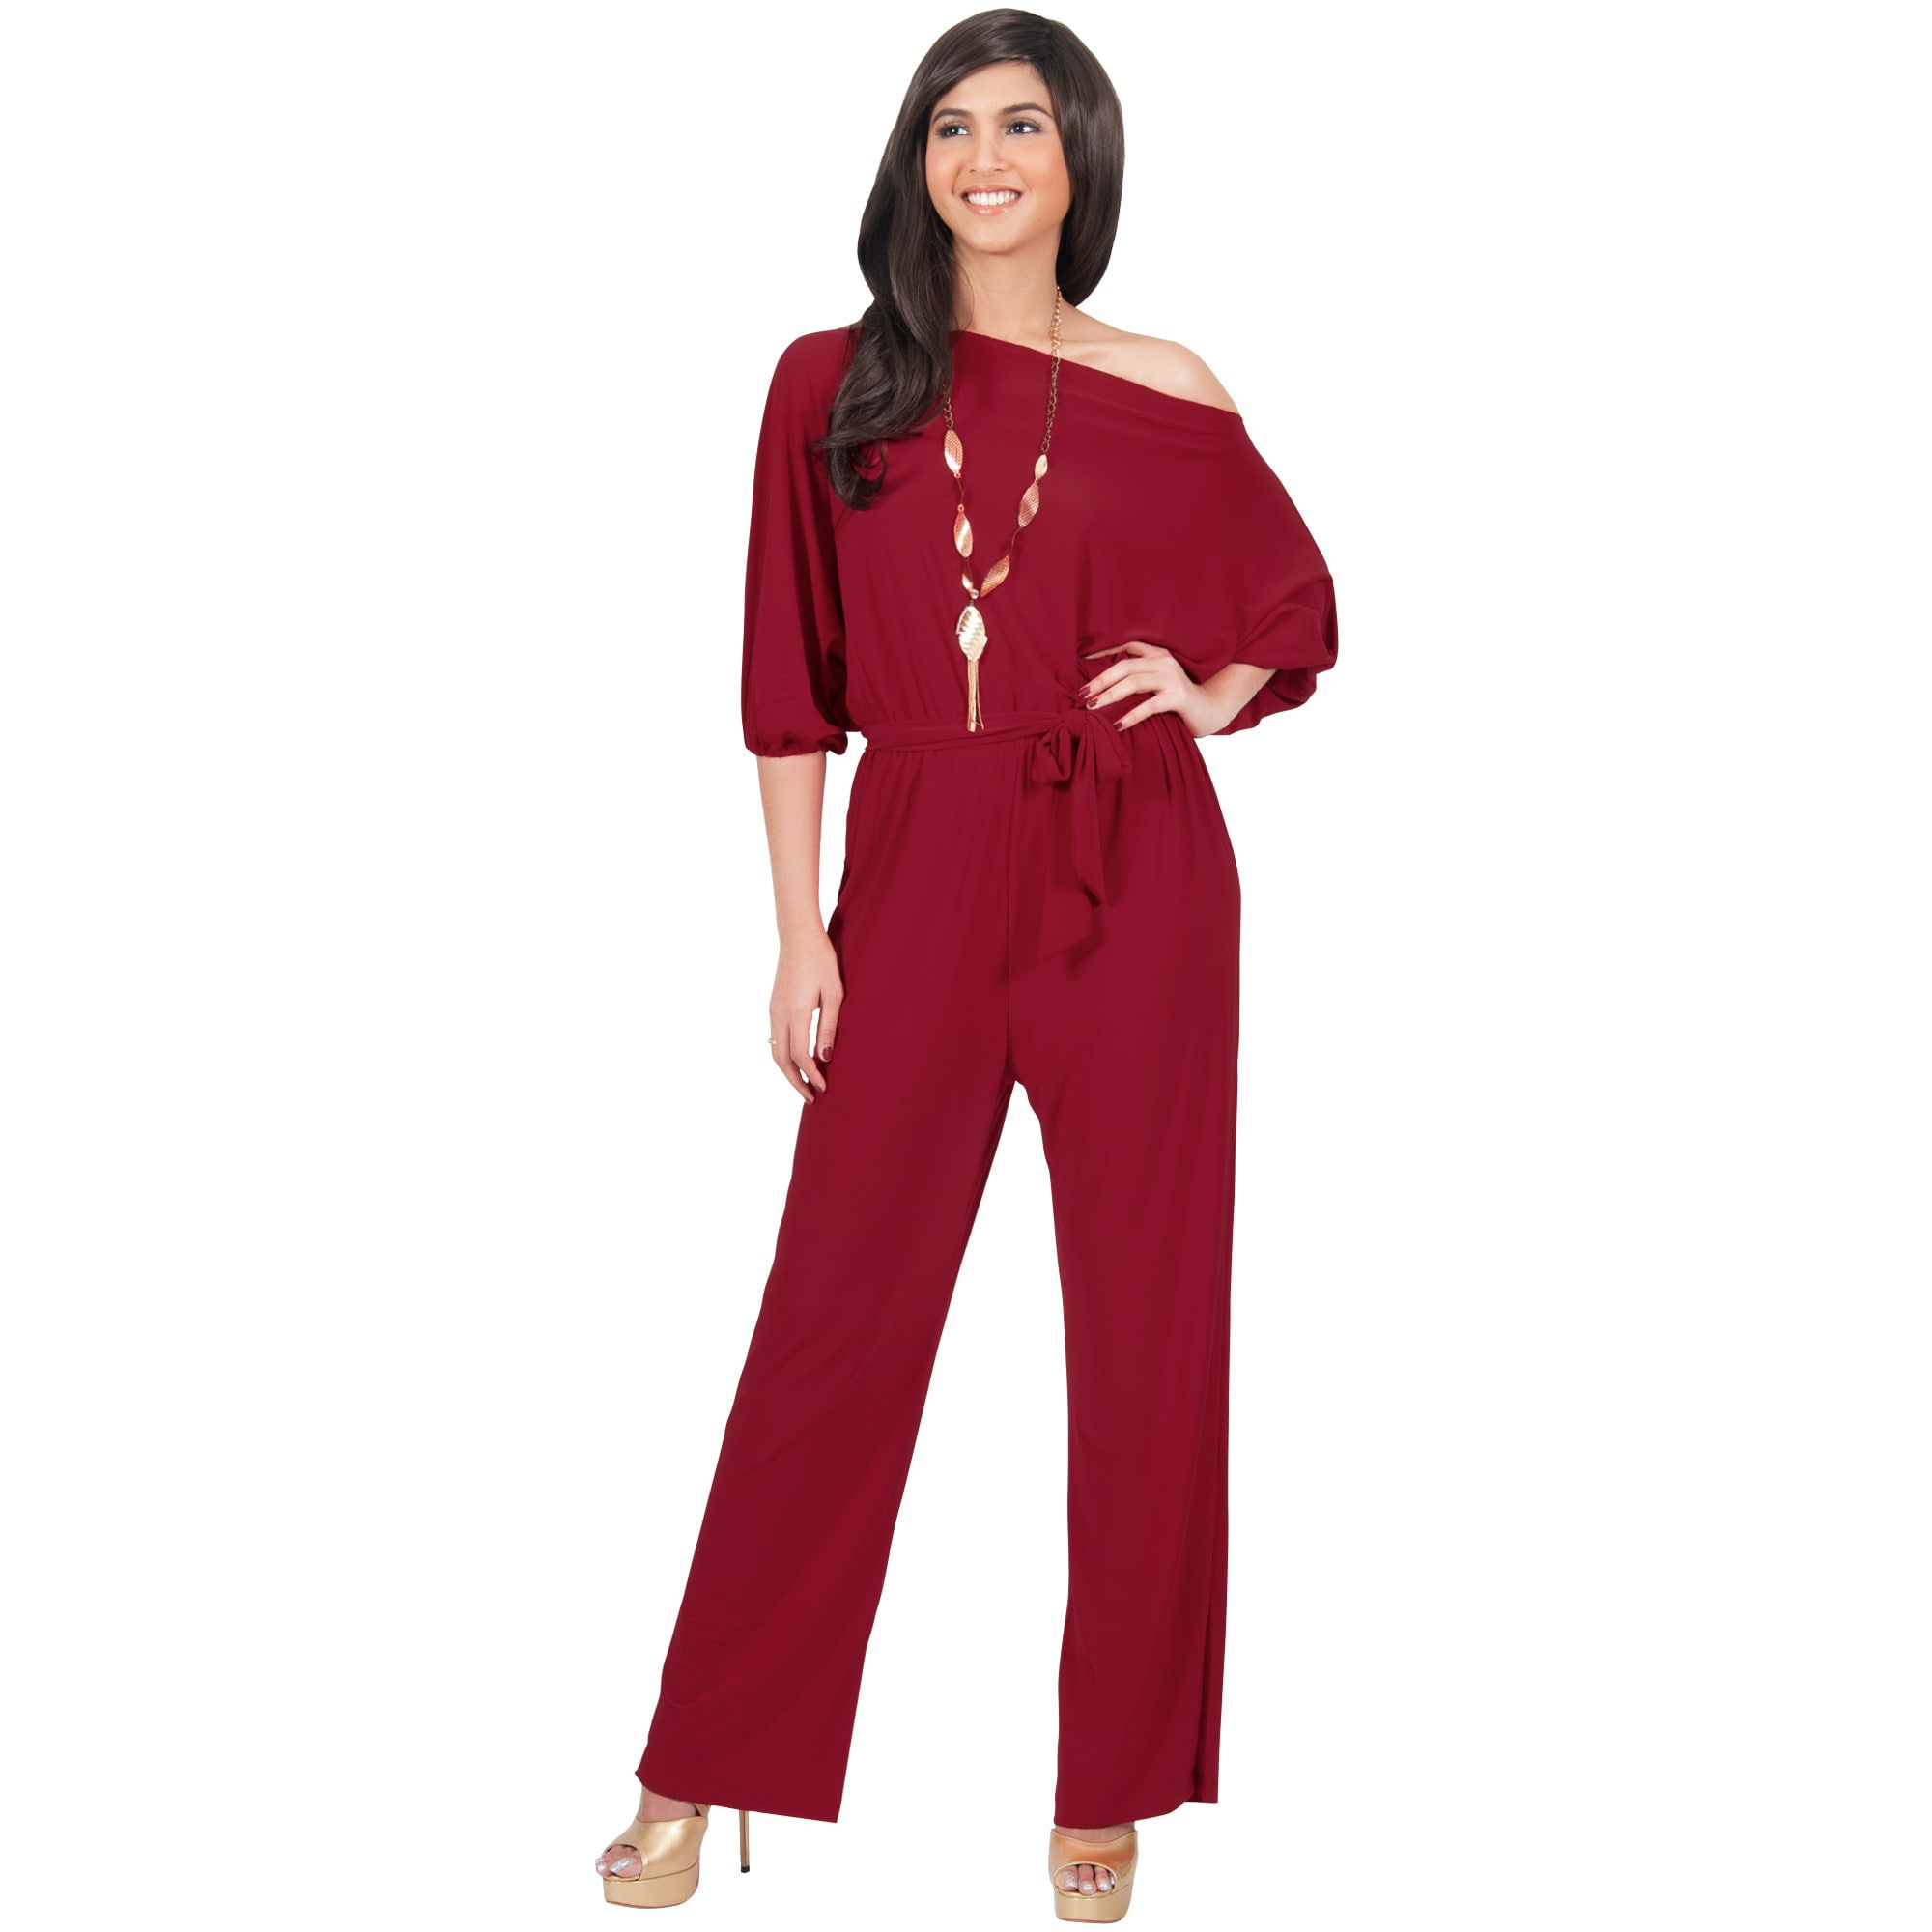 c70de14ca43 Shop KOH KOH Long One Off Shoulder 3 4 Sleeve Dressy Sexy Cocktail Jumpsuit  - Free Shipping Today - Overstock - 10838013